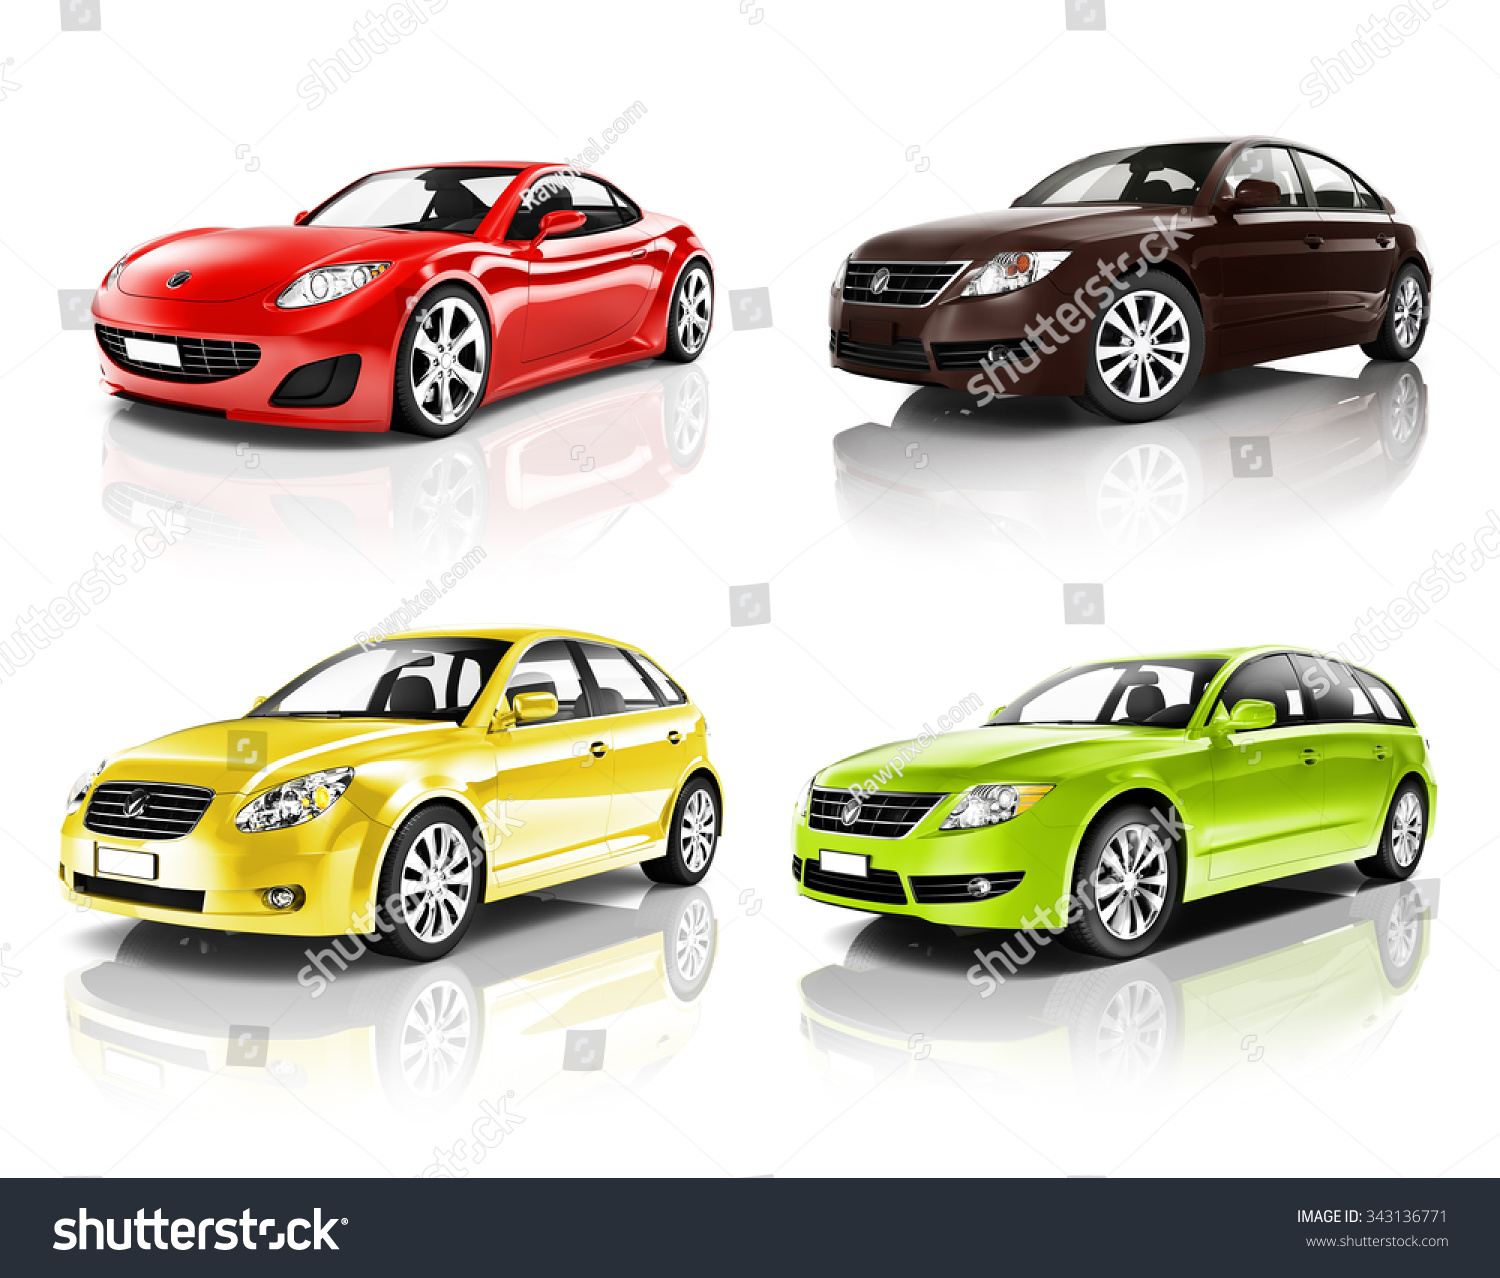 Car Automobile Contemporary Drive Driving Vehicle Stock